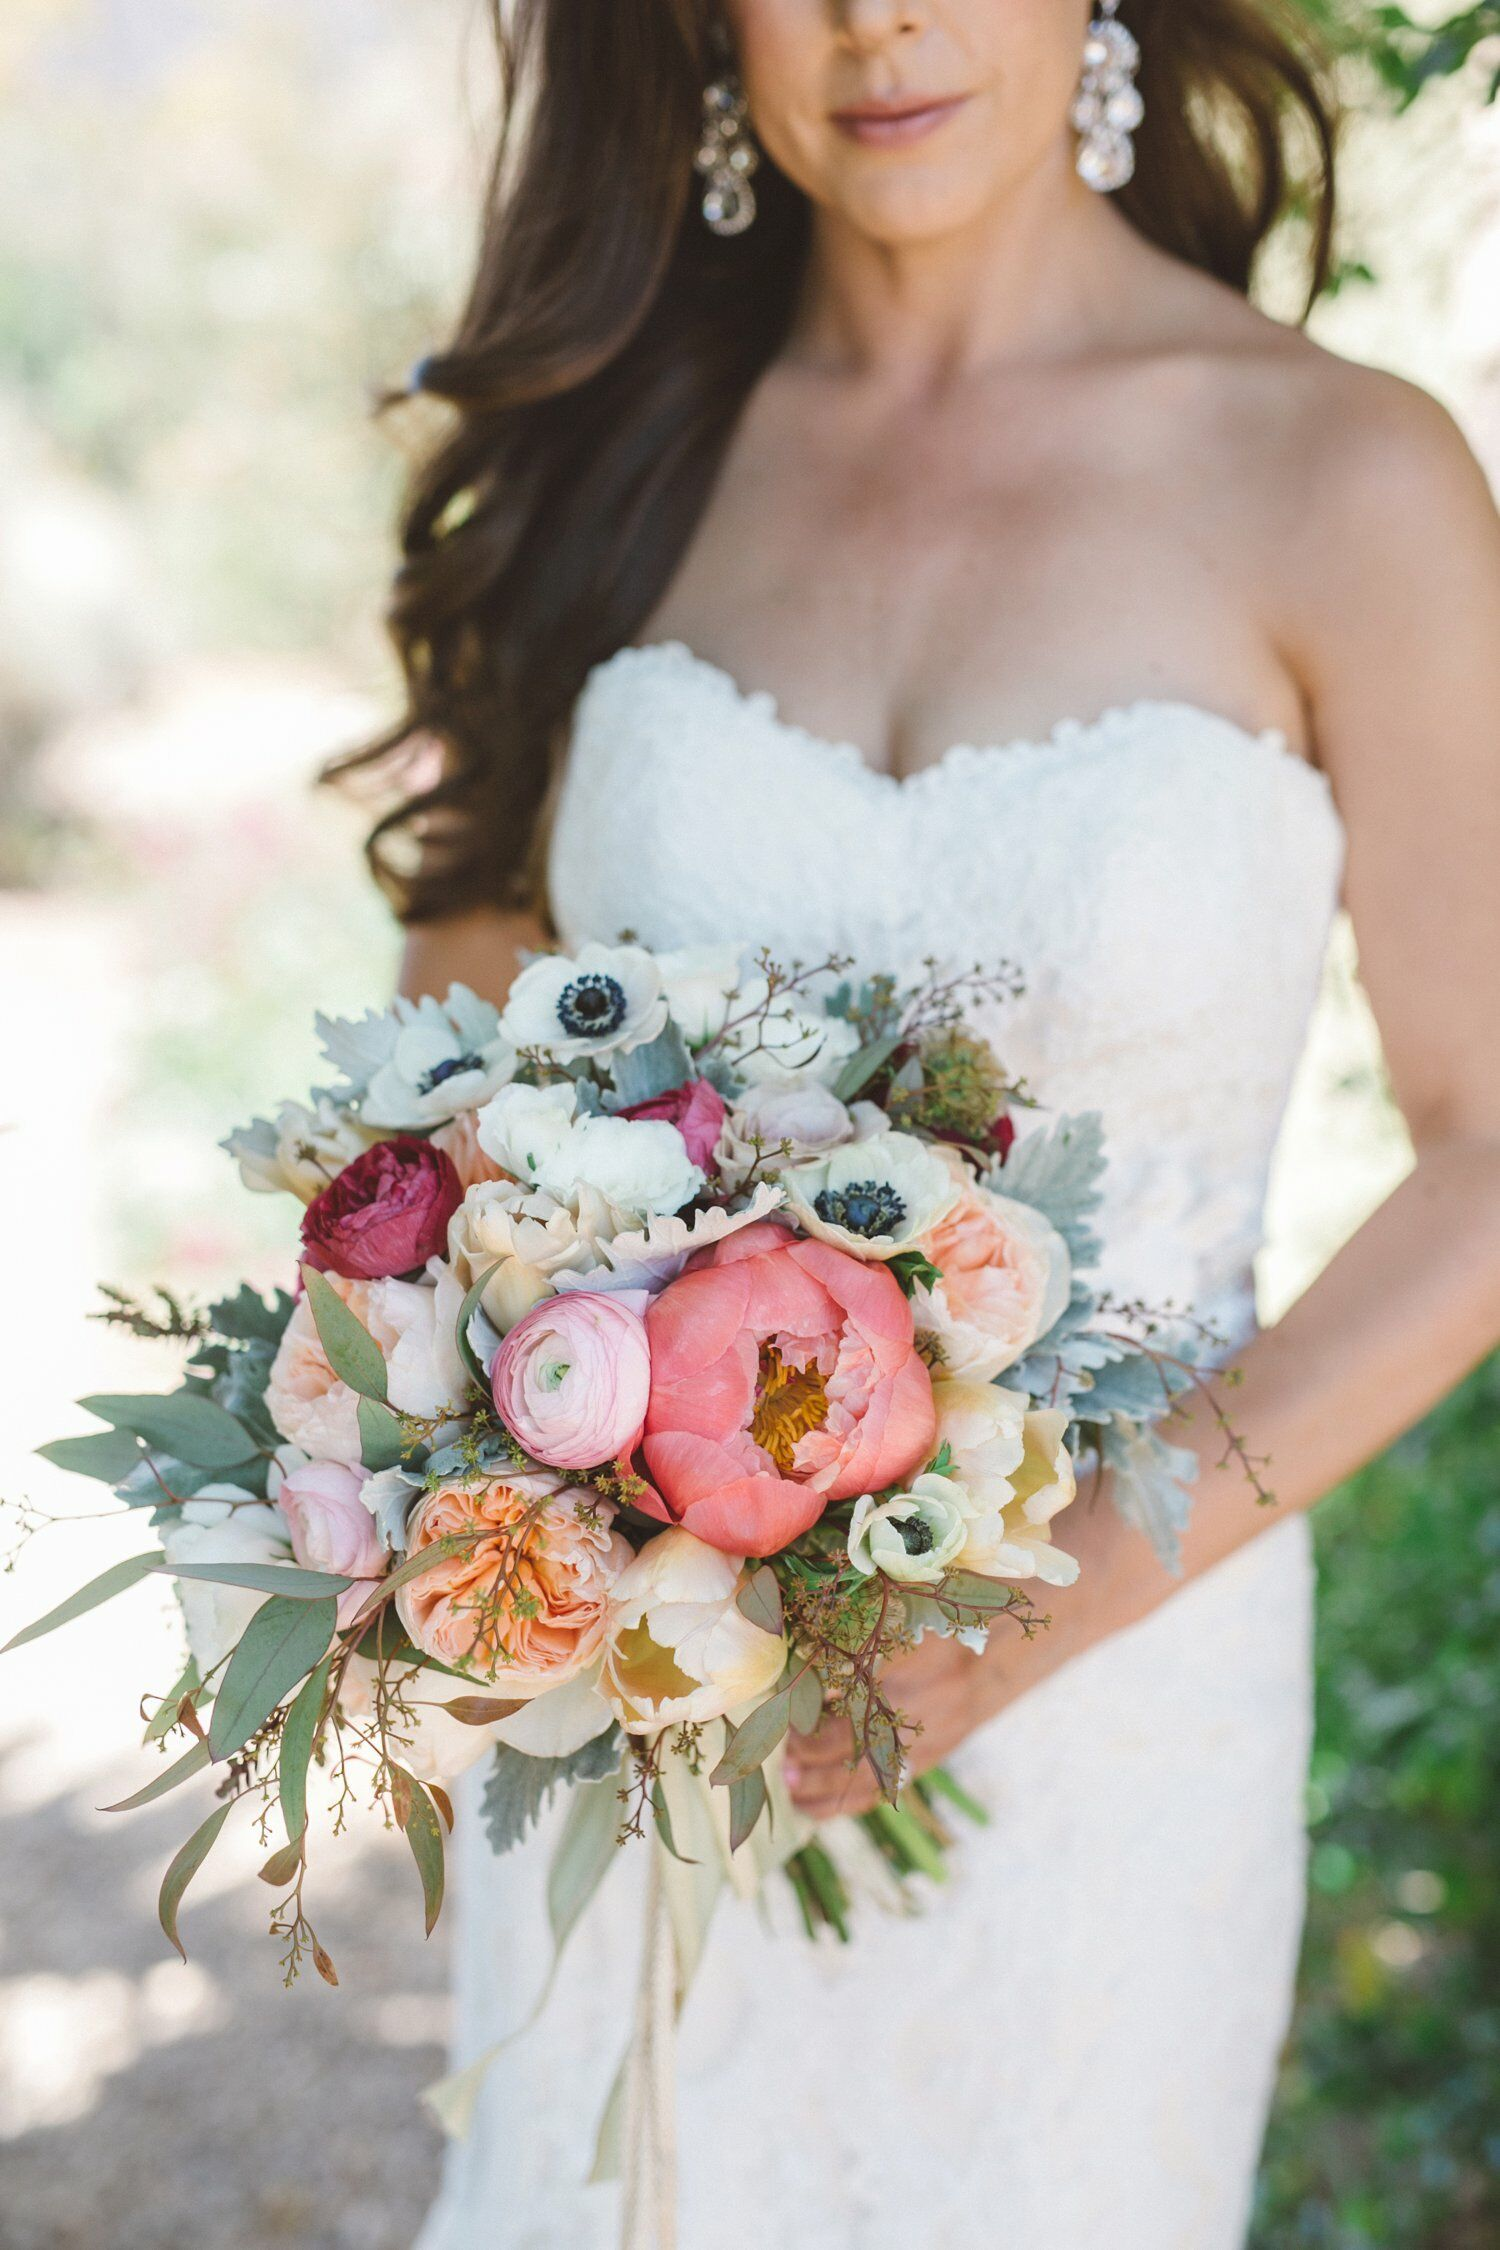 Tracy S Bountiful Bouquet Was A Loose Gathering Of Garden Roses Succulents Eucalyptus Peon In 2020 Bridal Bouquet Peonies Flower Bouquet Wedding Bridal Bouquet Fall